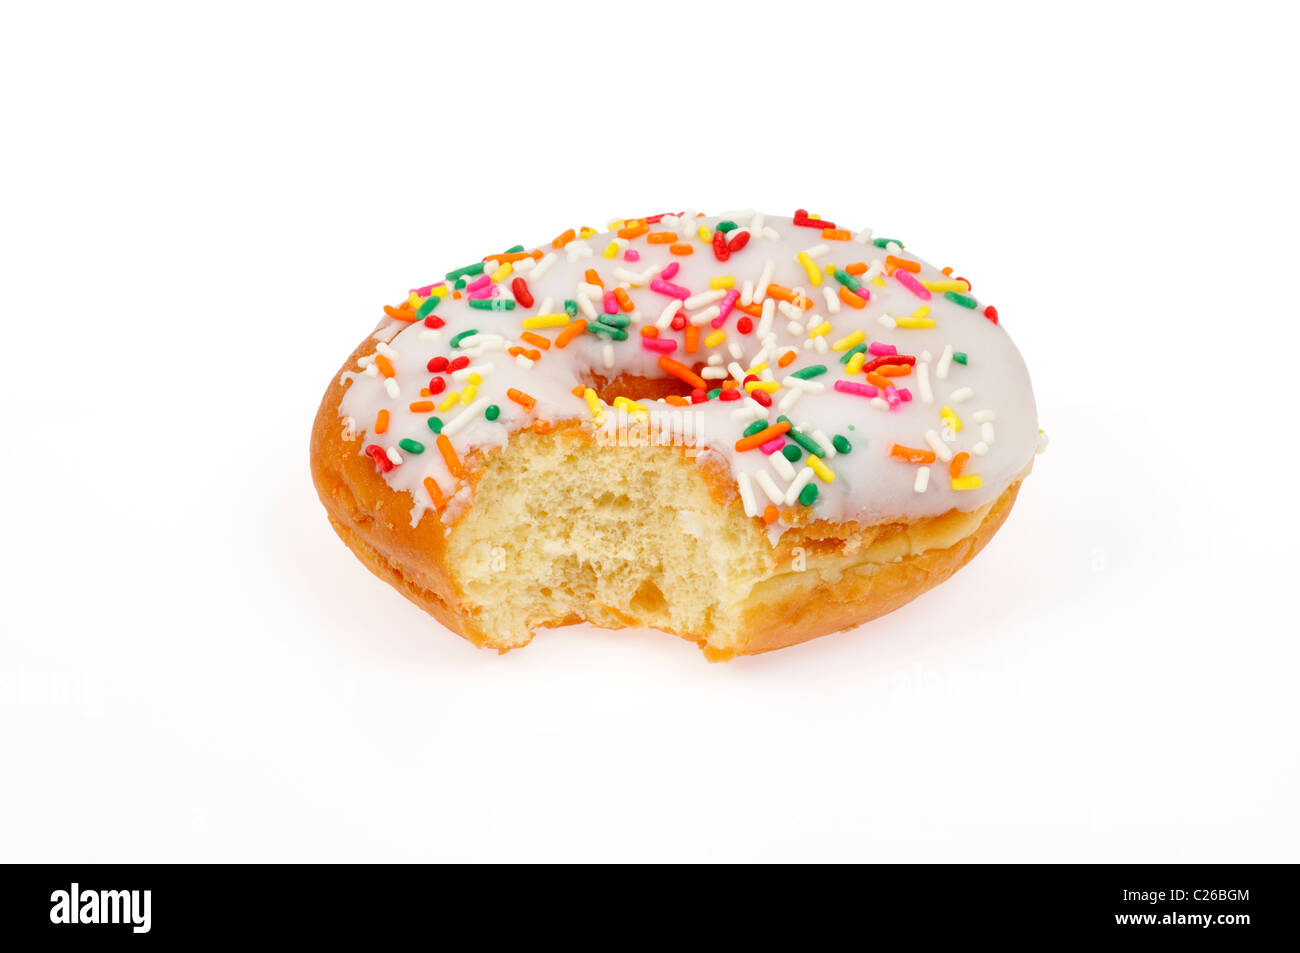 Partially eaten vanilla frosted donut with sprinkles on white background cut out - Stock Image